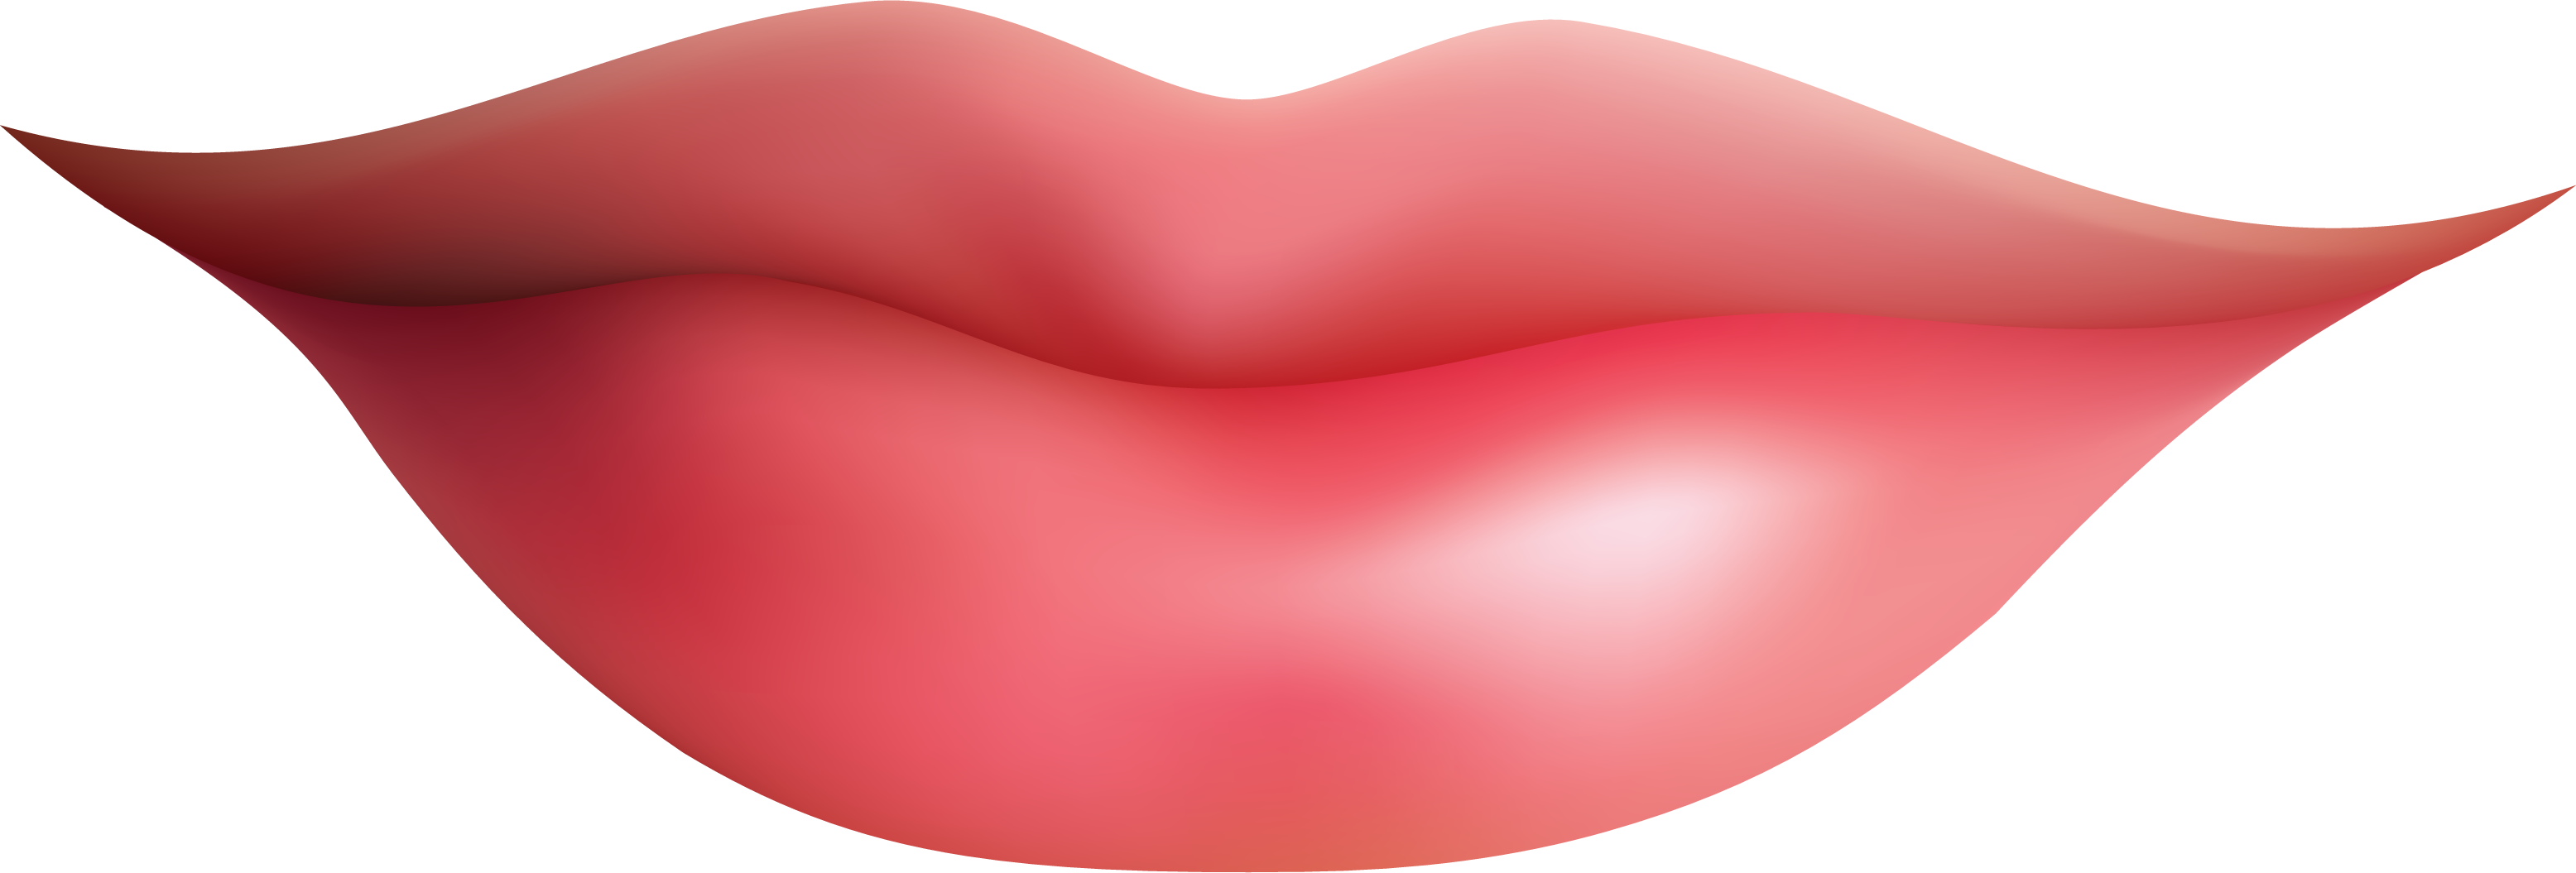 Girl Pink Lips Clipart Png